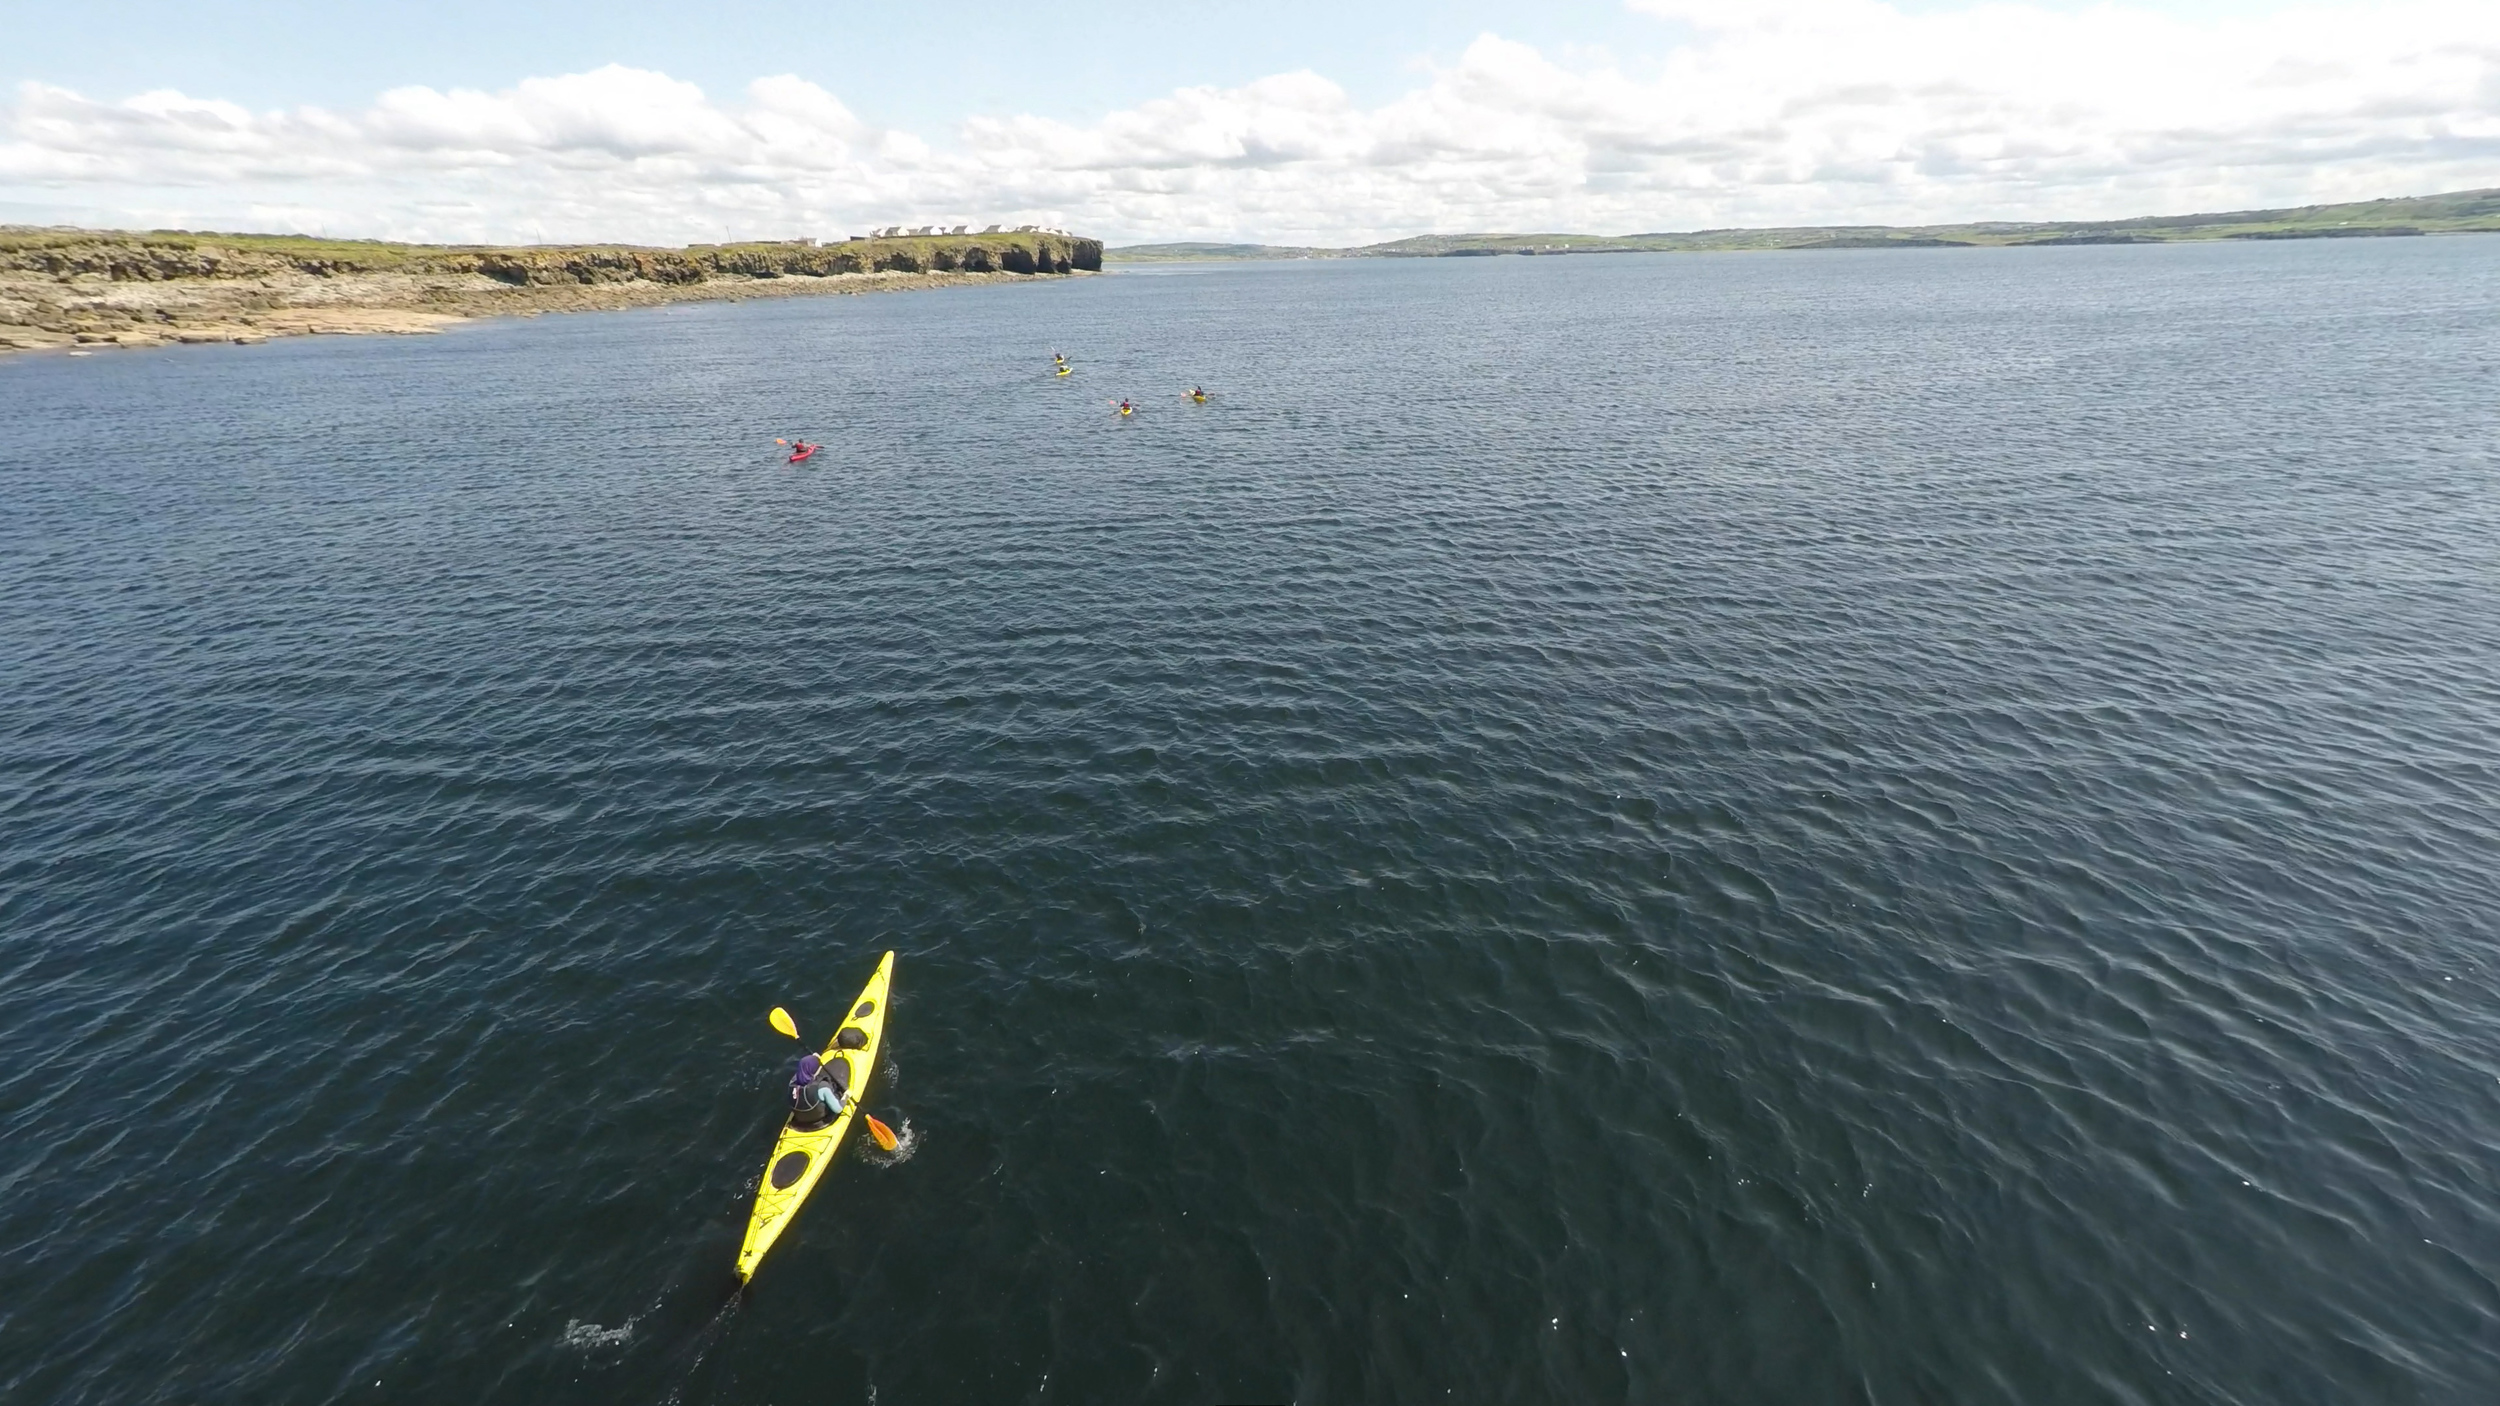 North Clare Sea Kayaking show me some nice paddling spots, thanks guys.  www.northclareseakayaking.com